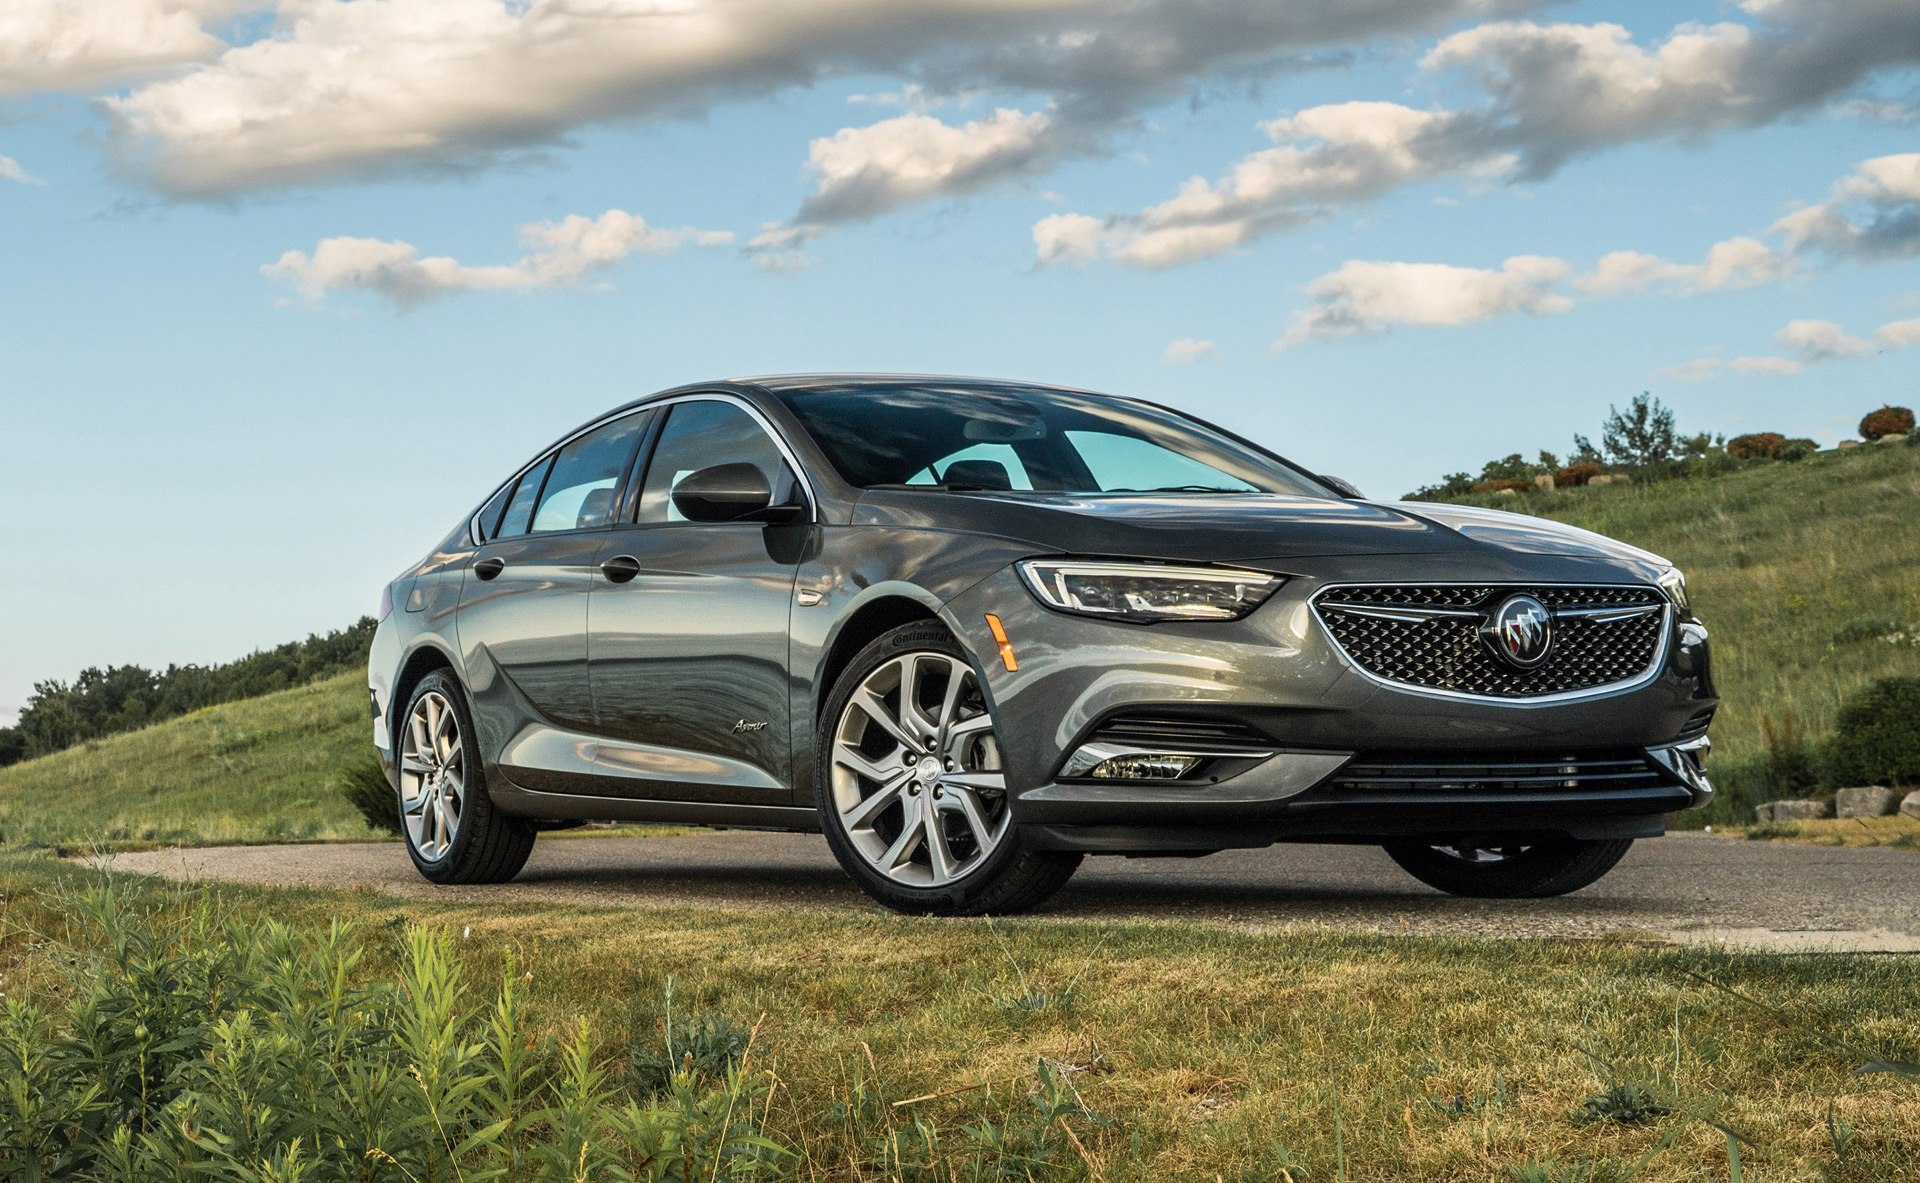 2019 Buick Regal Offered With Upmarket Avenir Trim New 2022 Buick Regal Pictures, Performance, Review